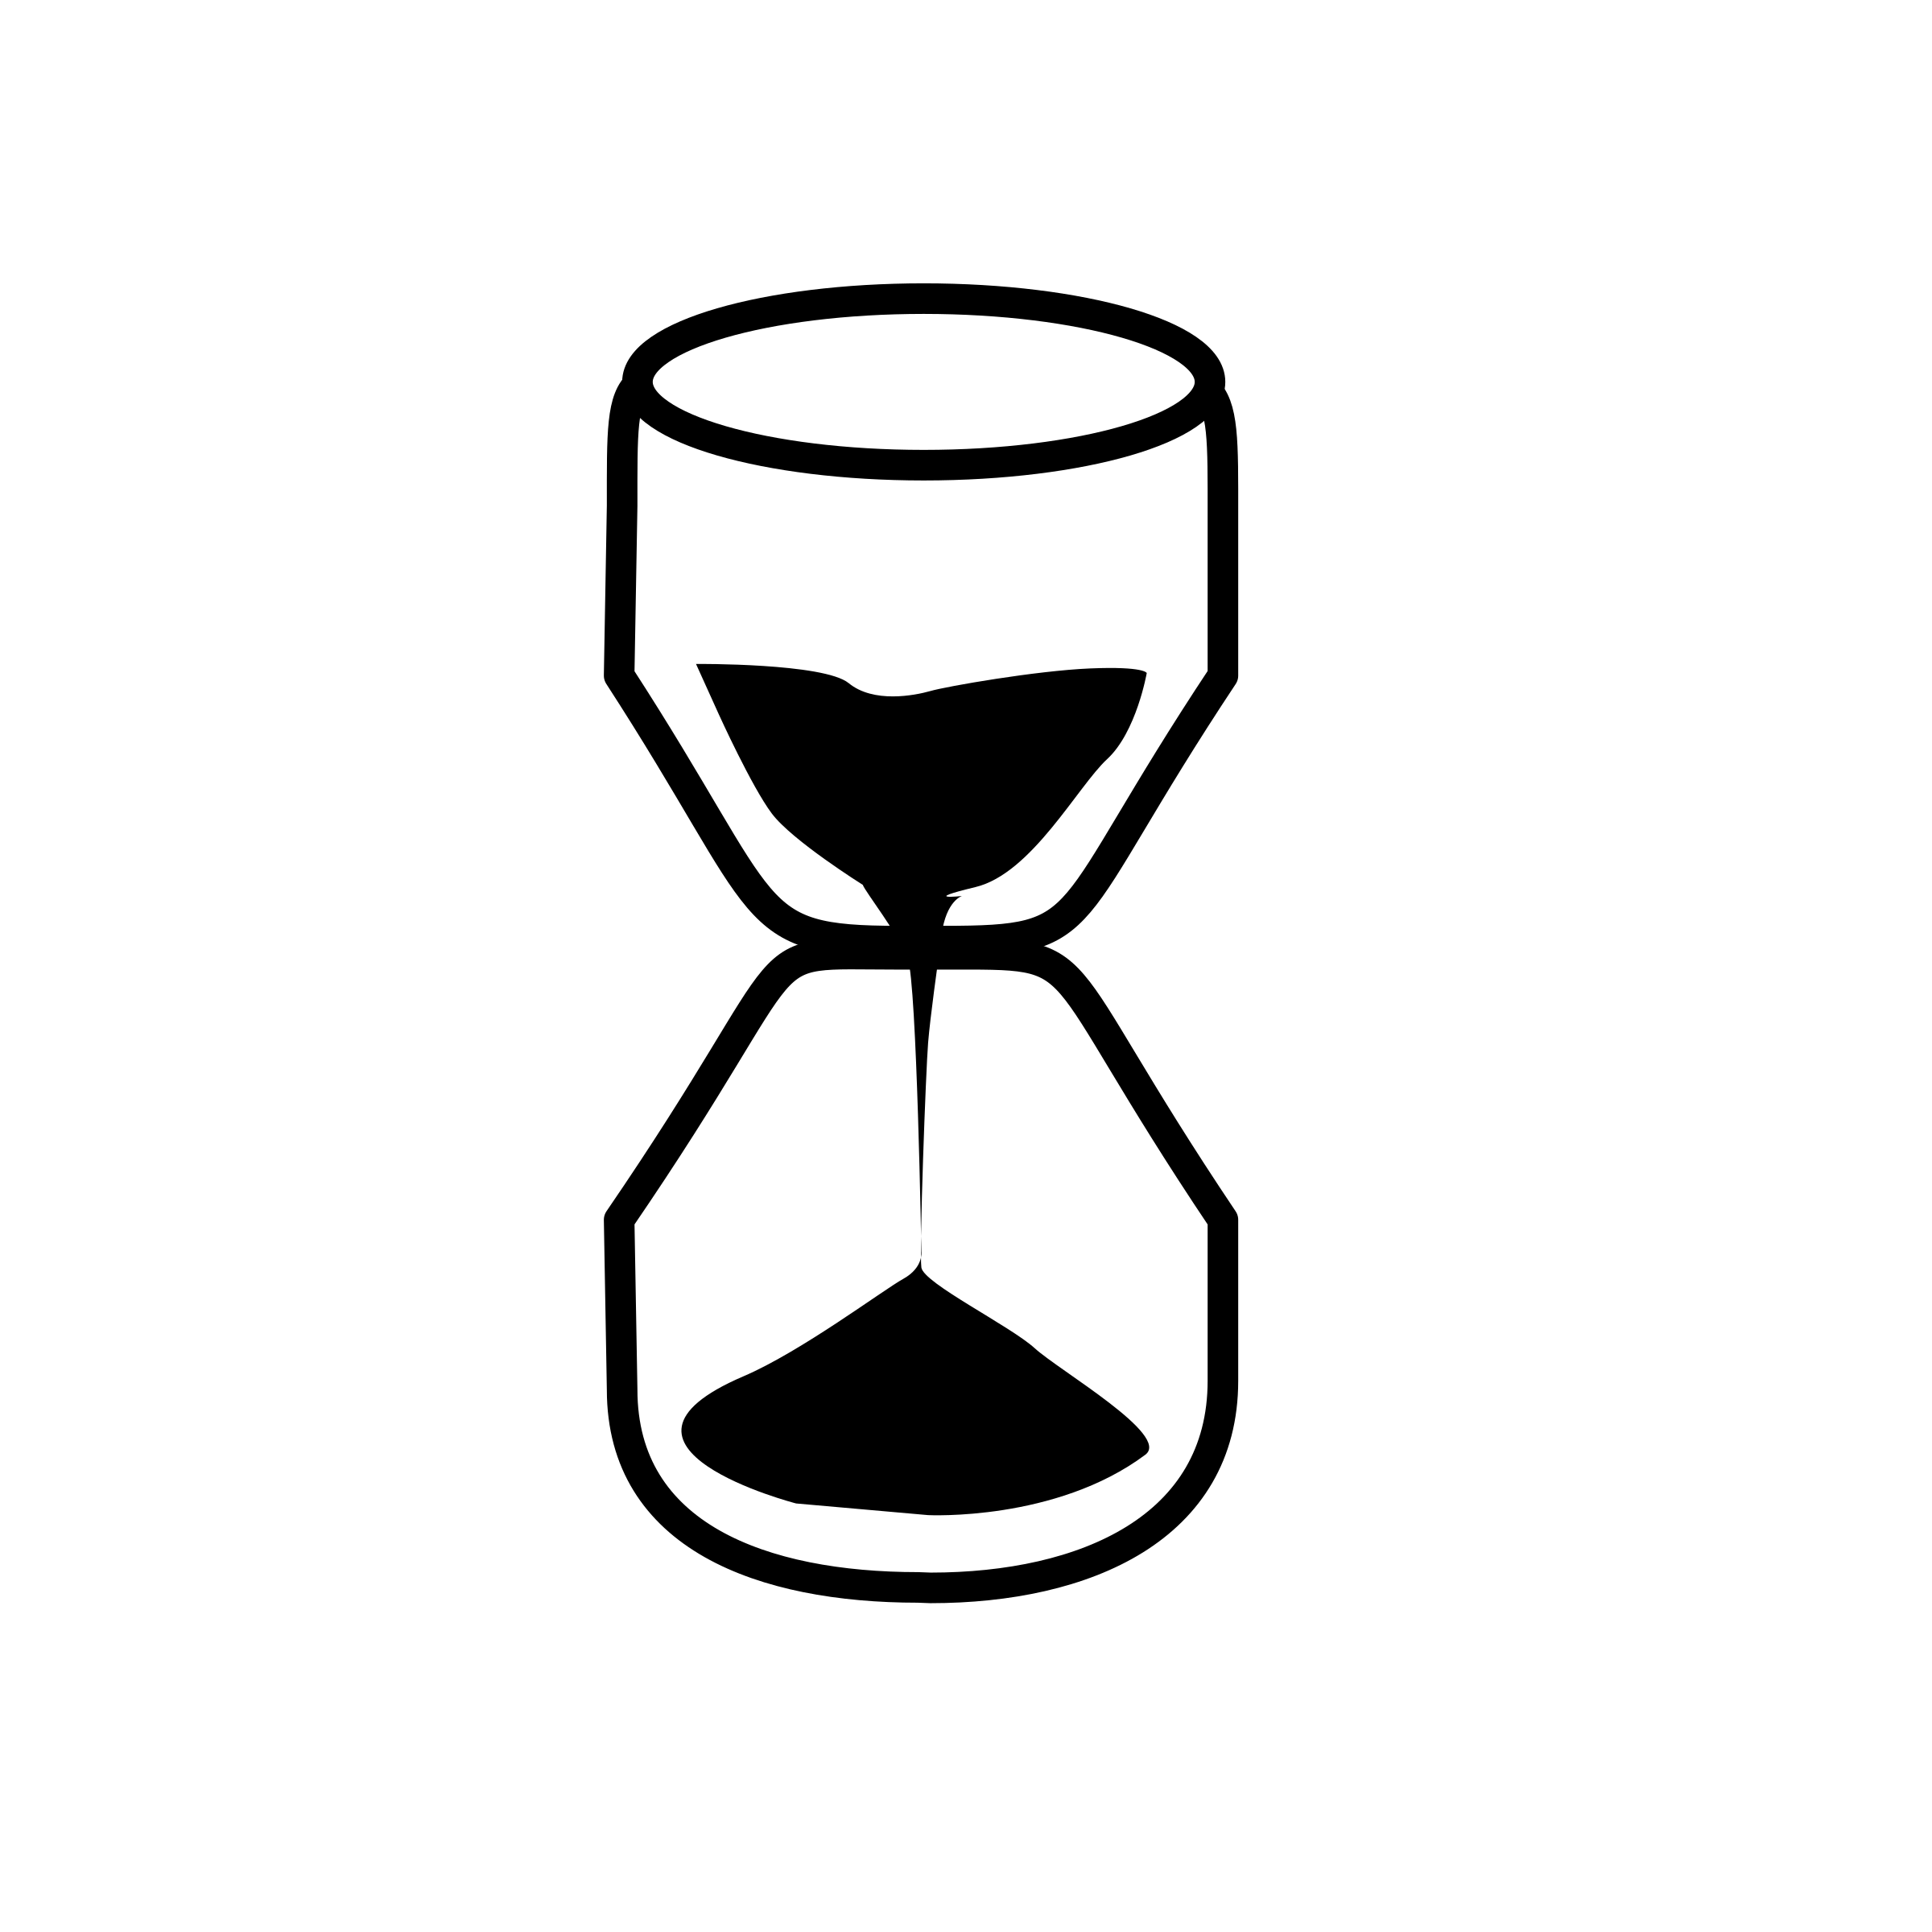 Time icon by Anonymous